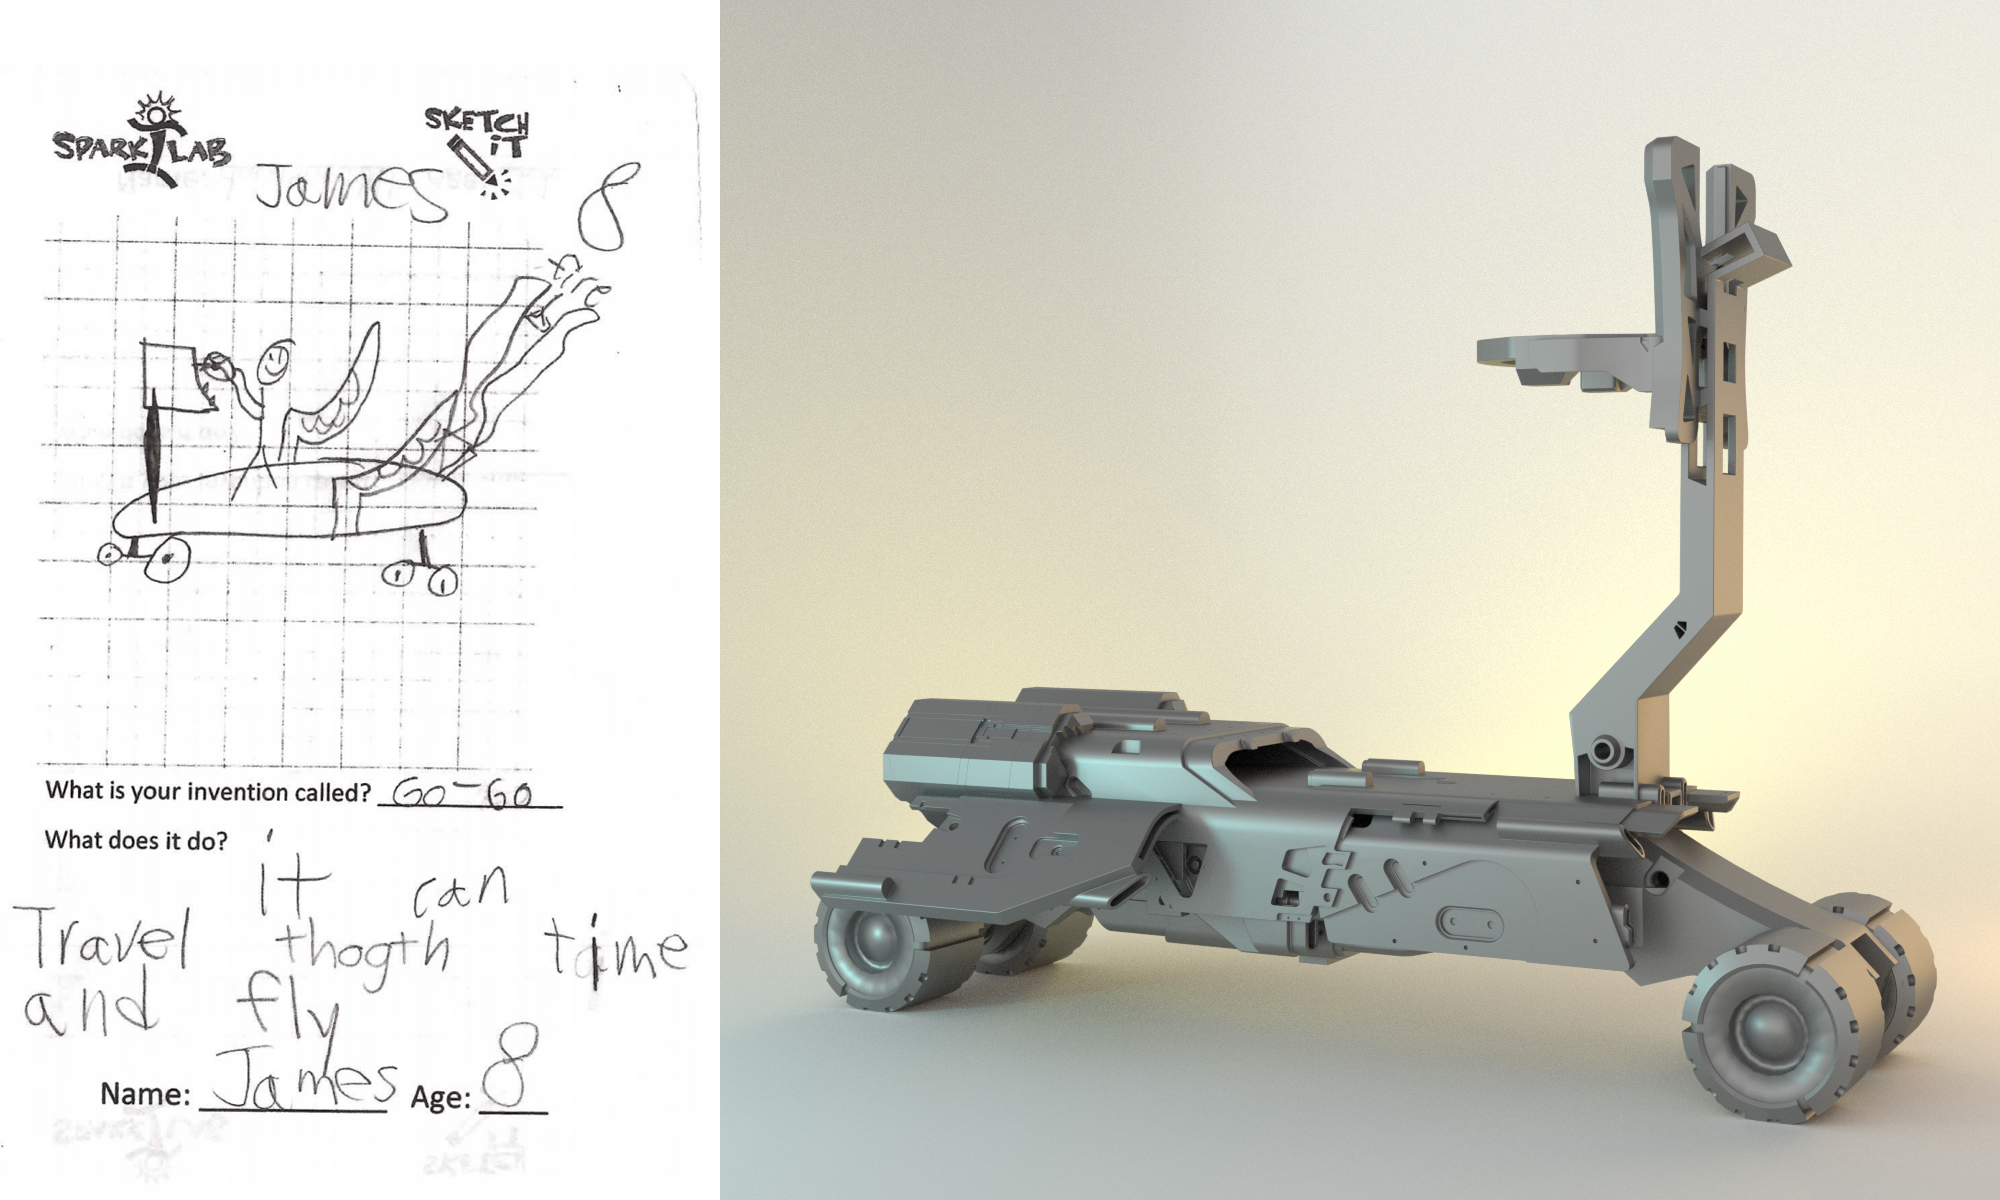 Formlabs collaborated with the Smithsonian's Spark!Lab to render the skateboard of the future.